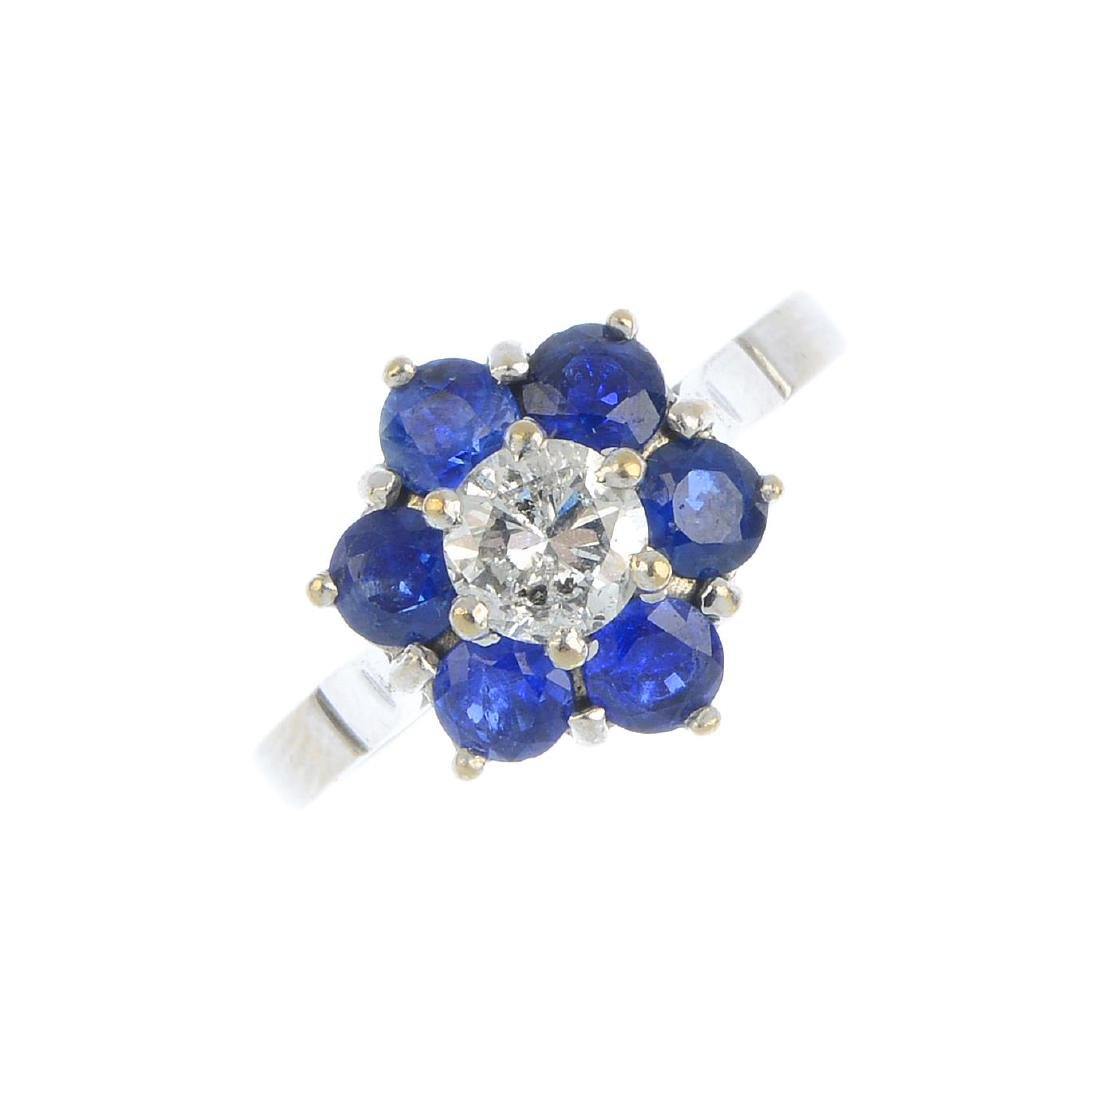 A sapphire and diamond cluster ring. The brilliant-cut